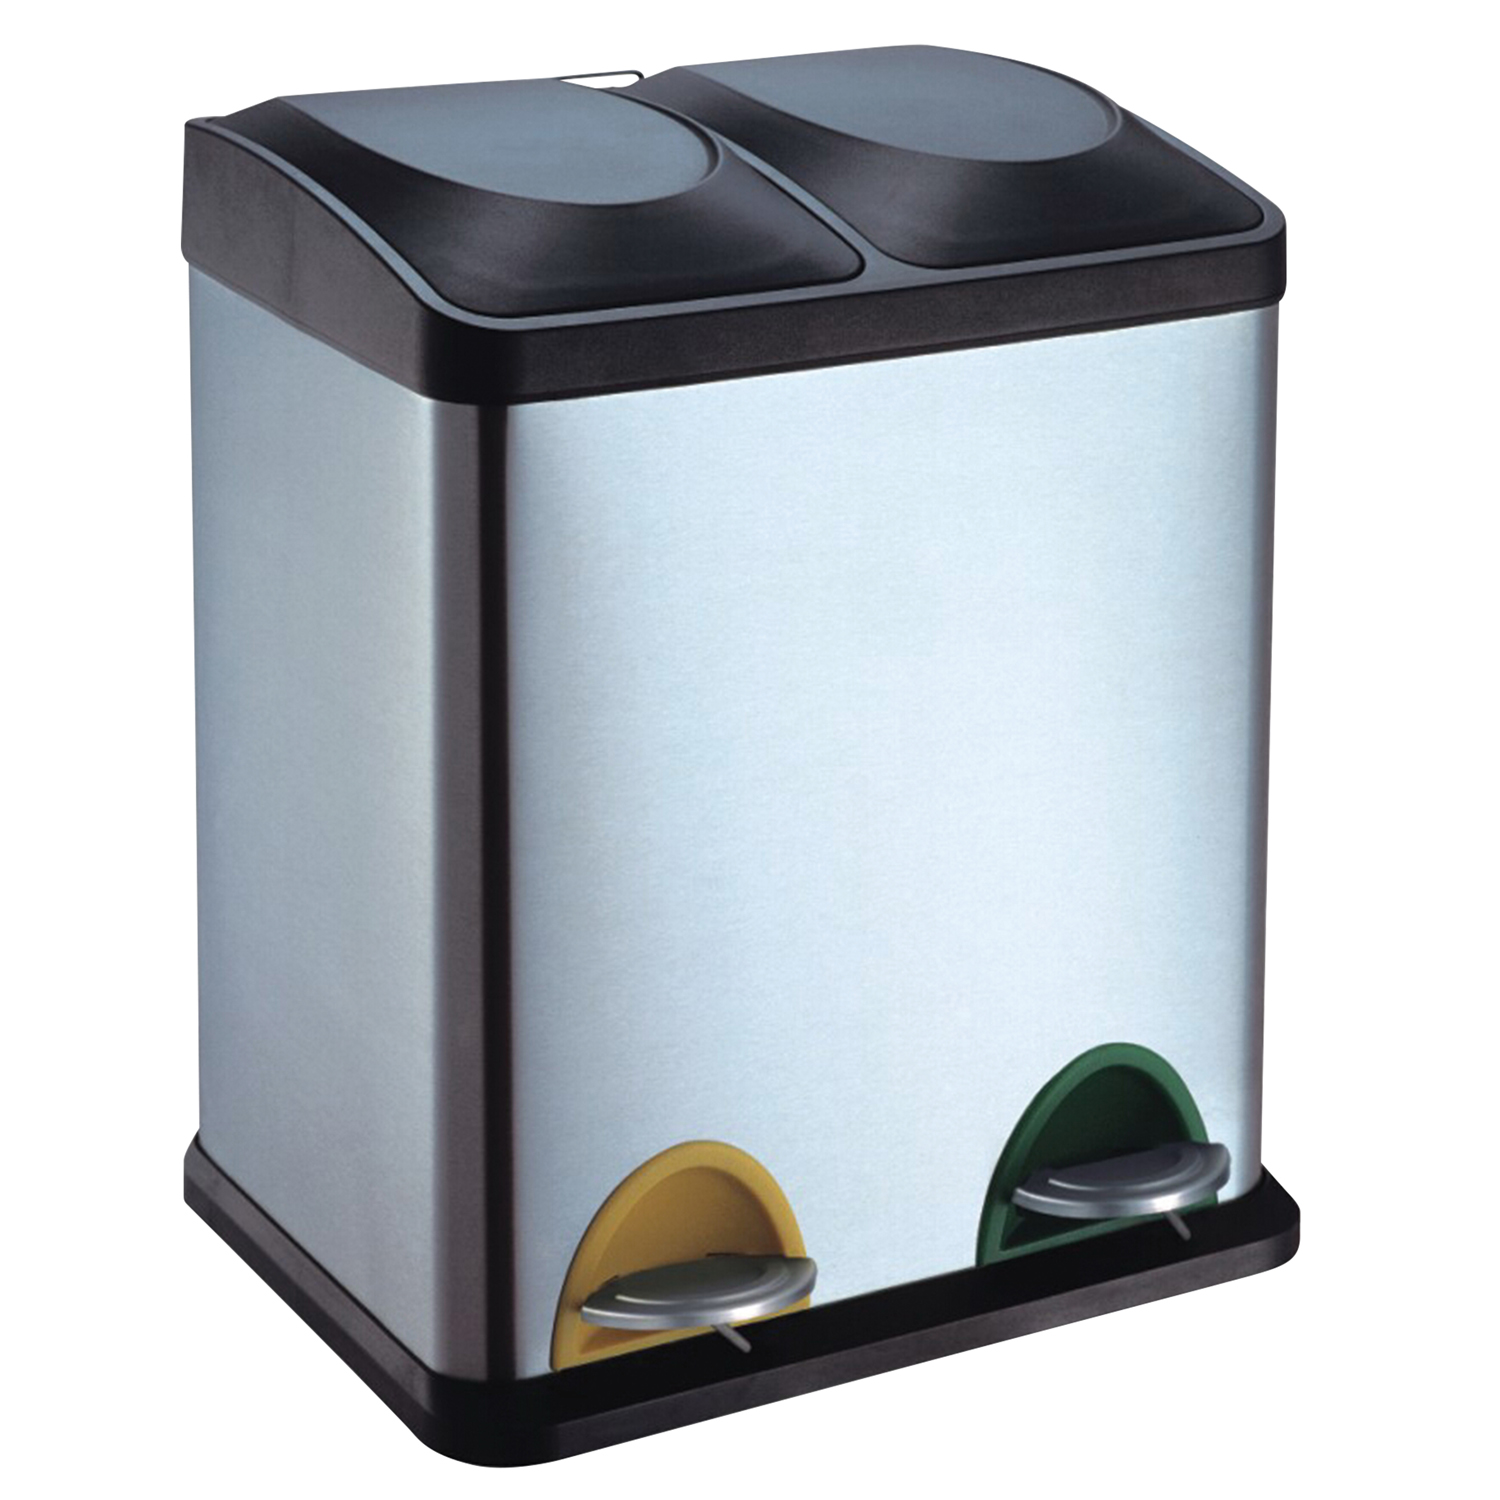 small recycling bins for kitchen 36 inch cabinets double bin 30 litre home store more images